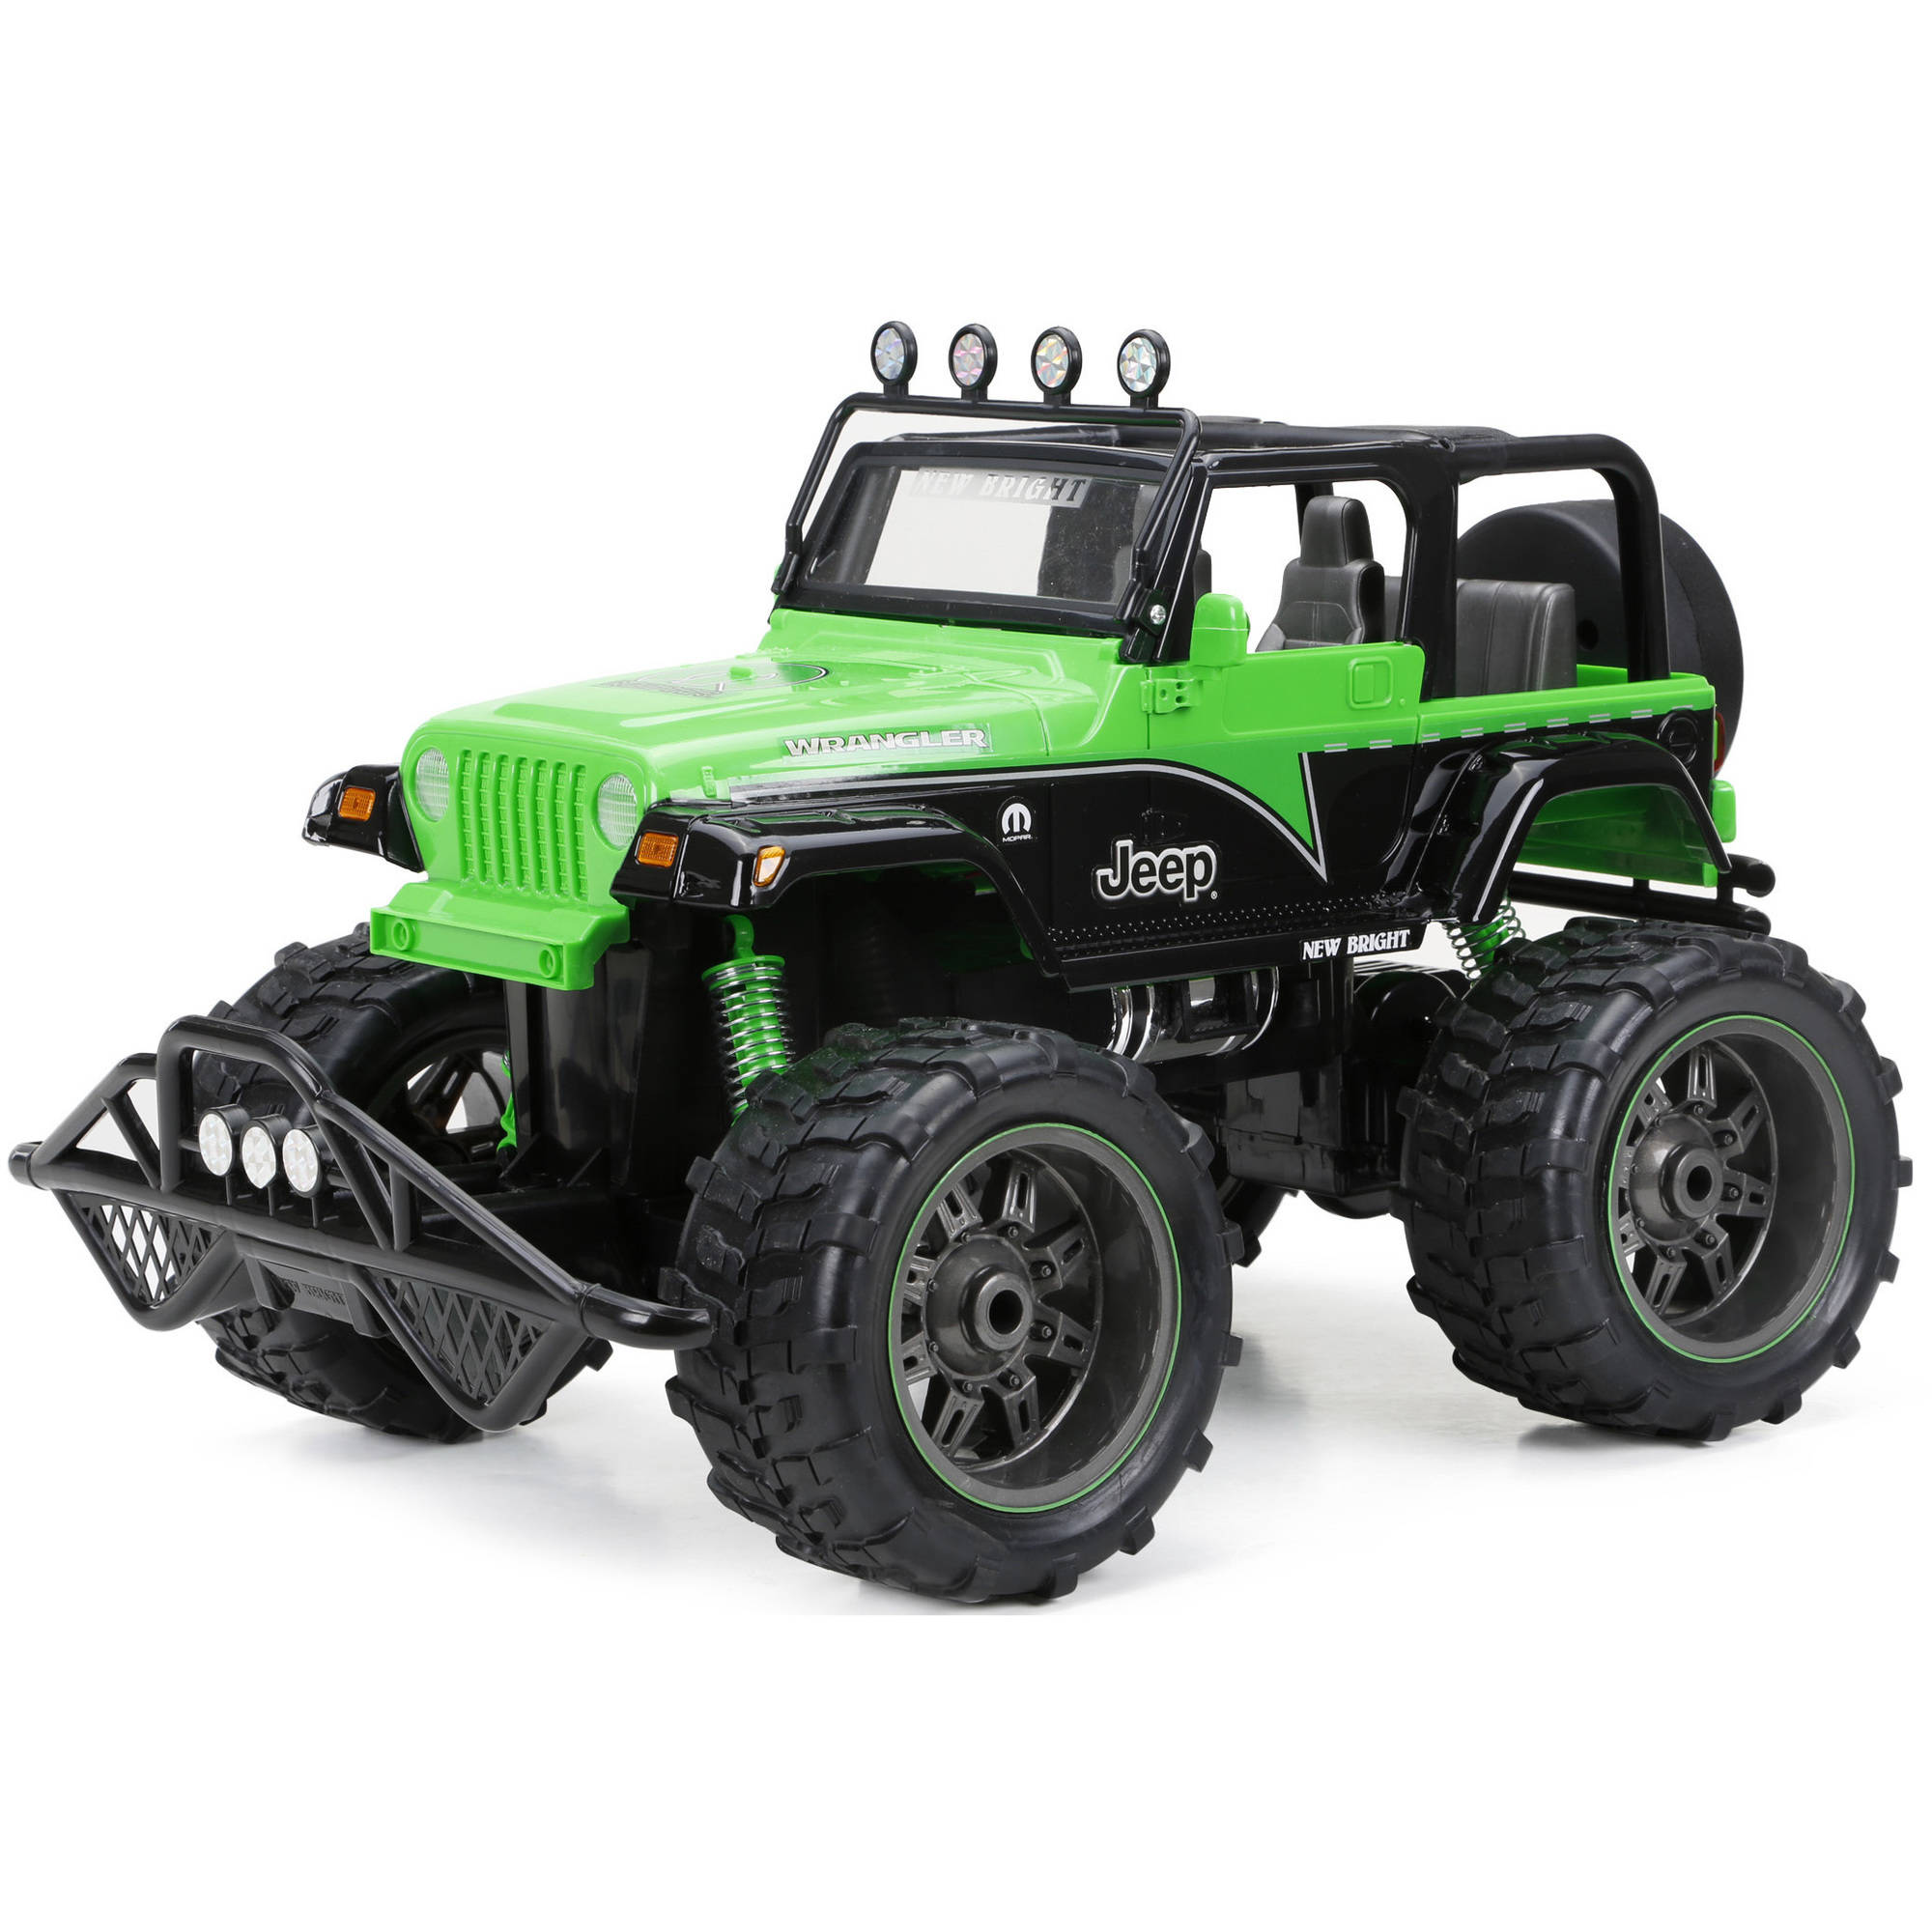 New Bright 1:10 Radio Control Mopar Jeep Truck, Black/Blue